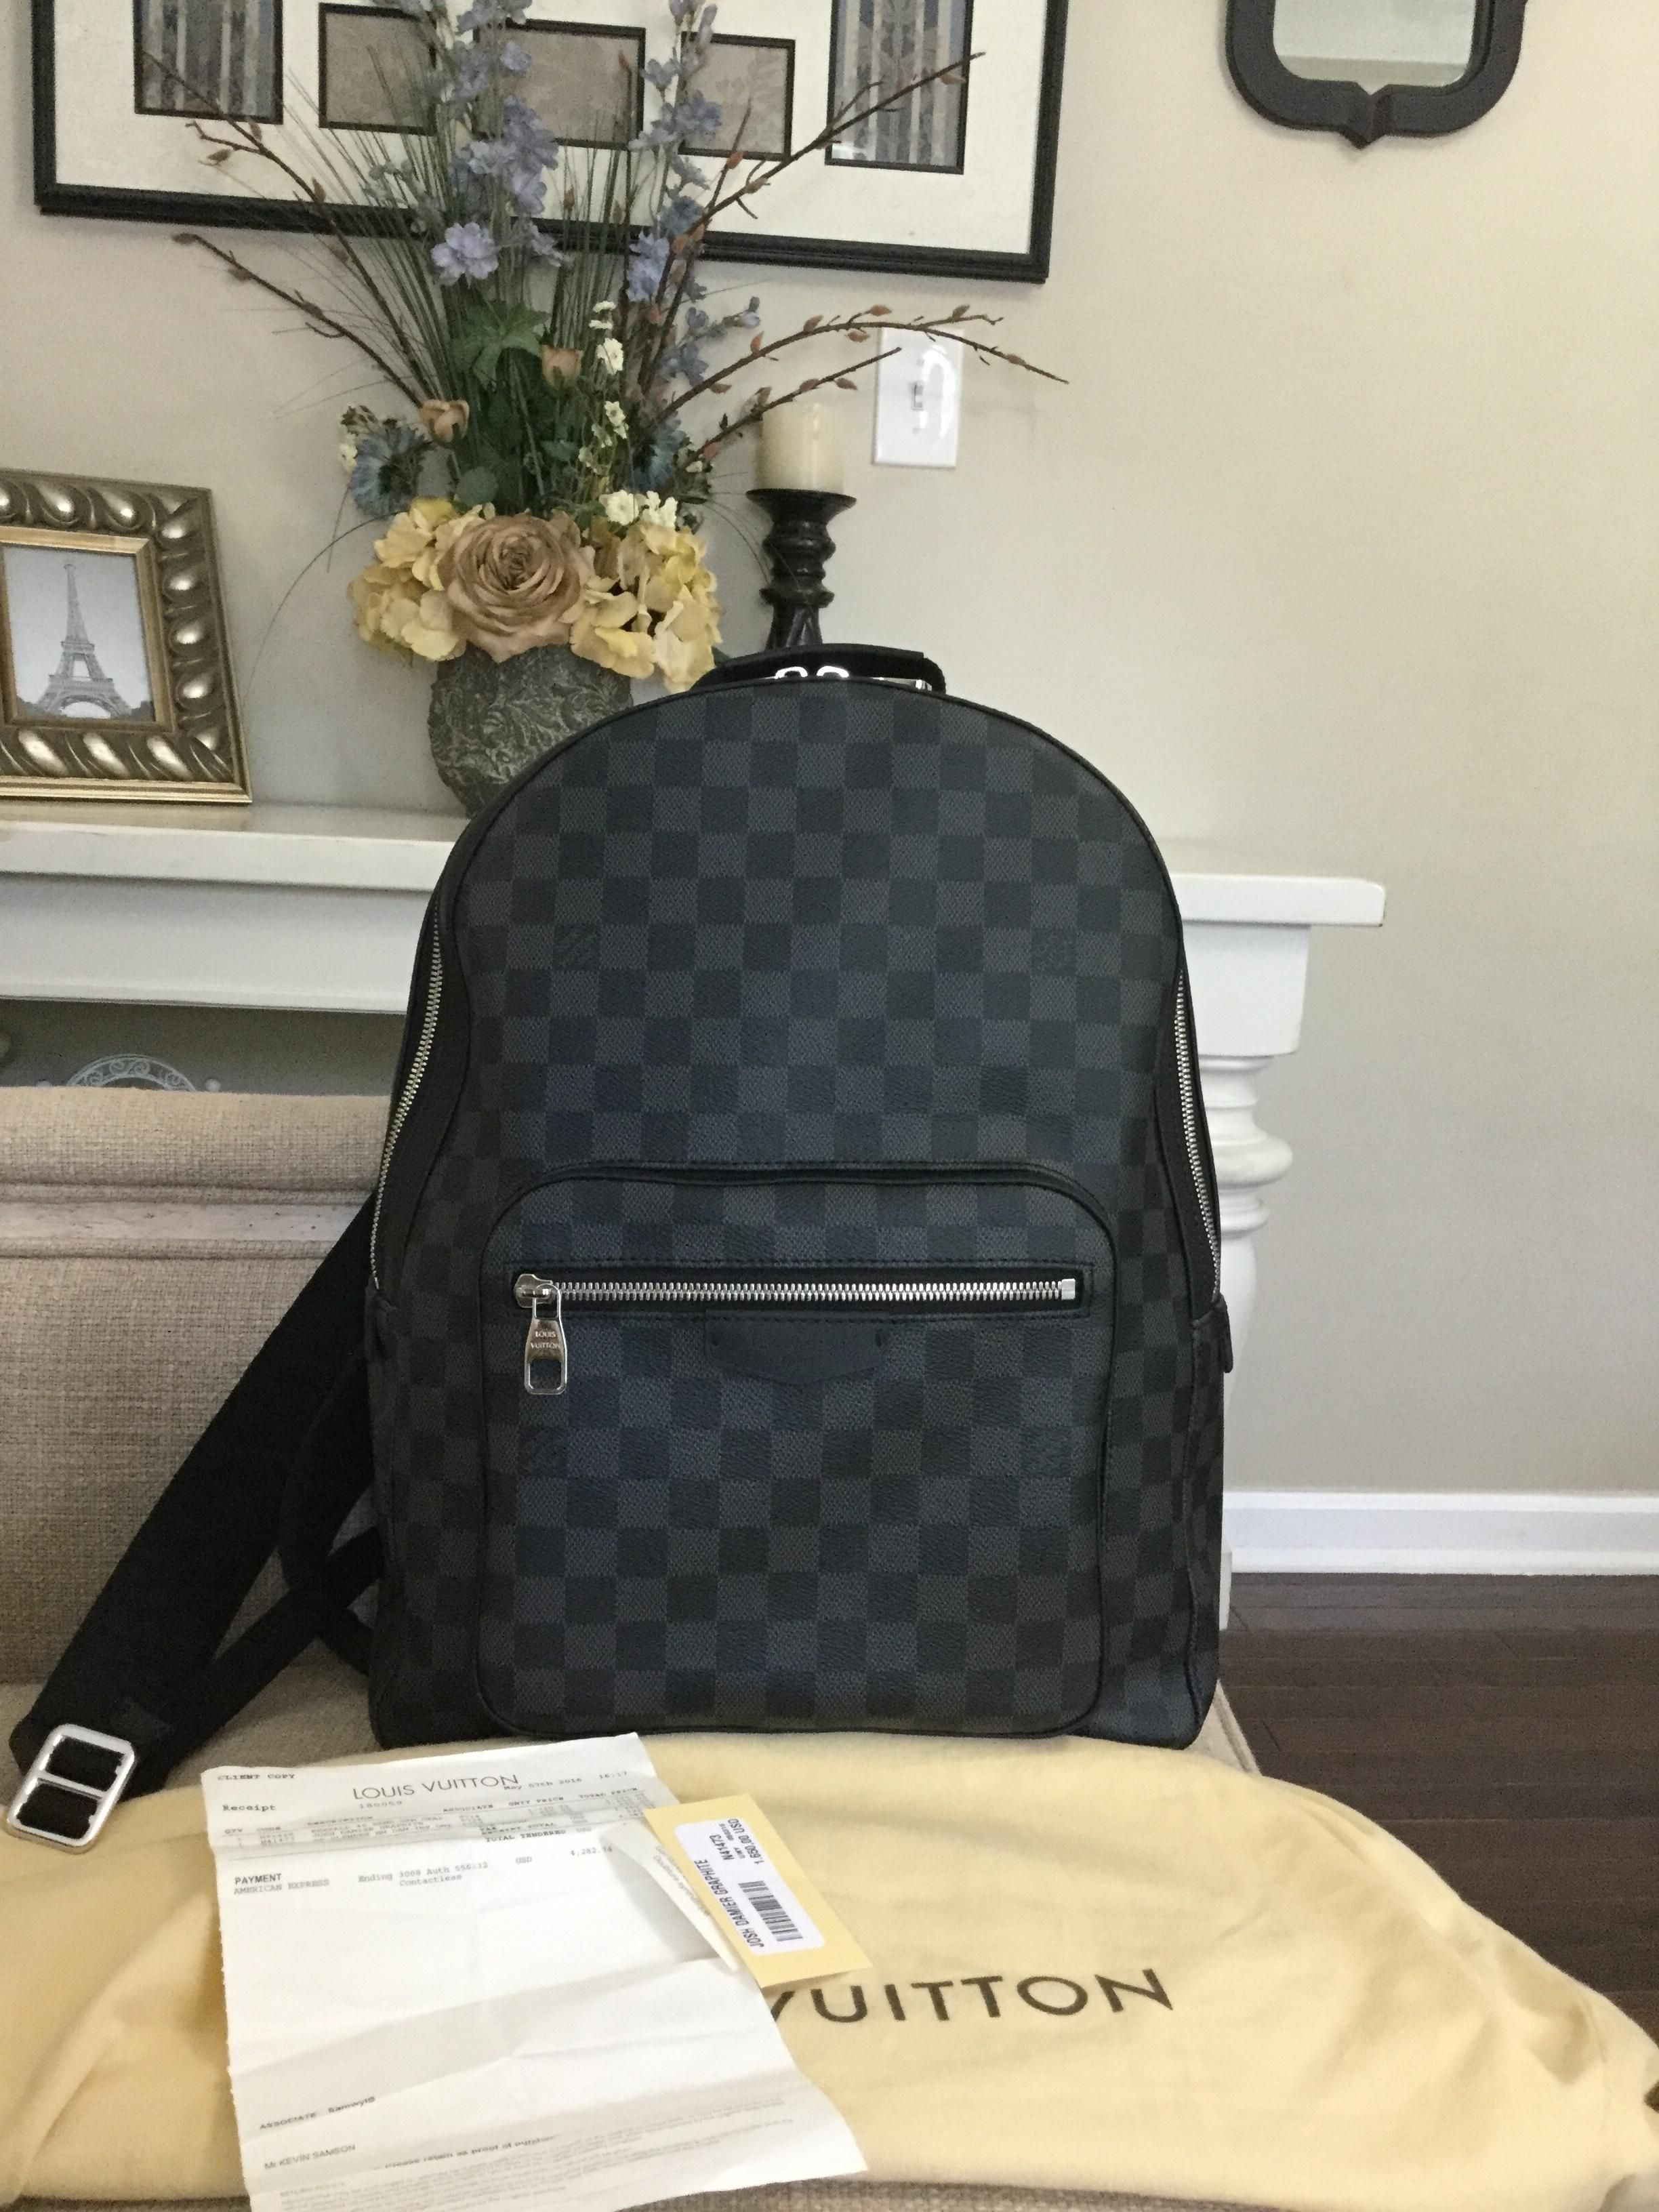 Louis Vuitton Wow Brand New 2016 Josh Date Code Sd1176 Made In Usa! Backpack.  Get one of the hottest styles of the season! The Louis Vuitton Wow Brand New  ... d828252c6d